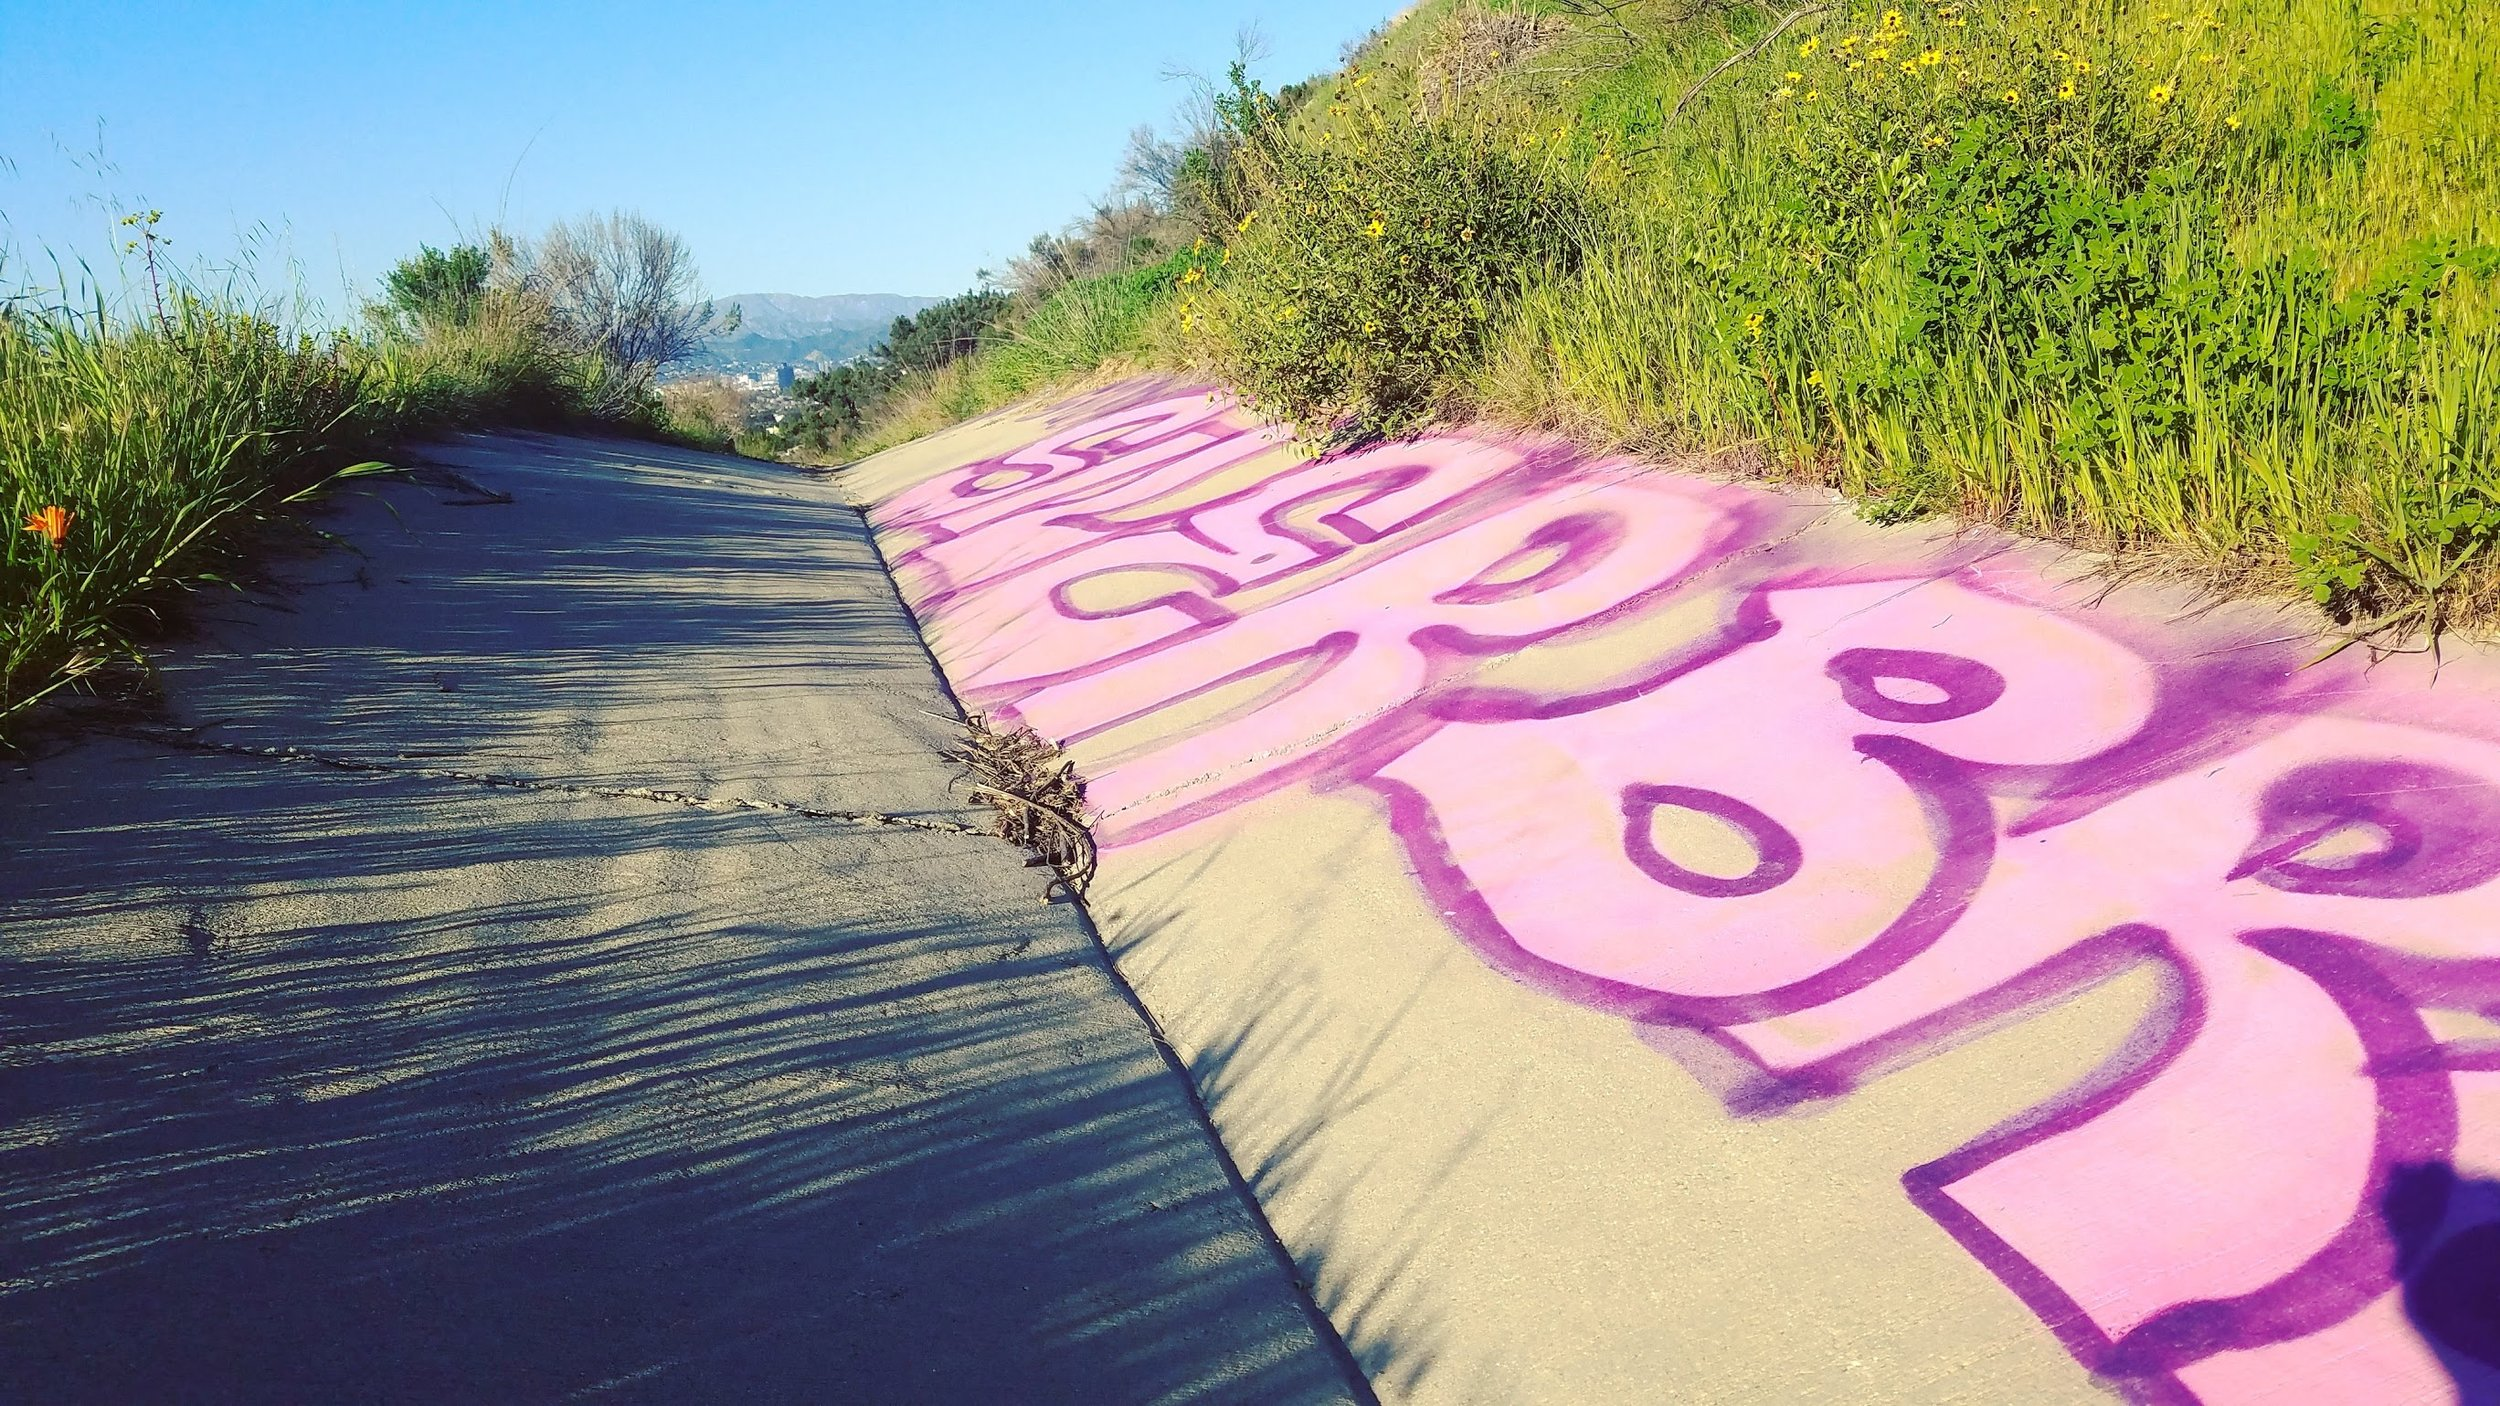 A magical pathway of graffiti and wildlife.